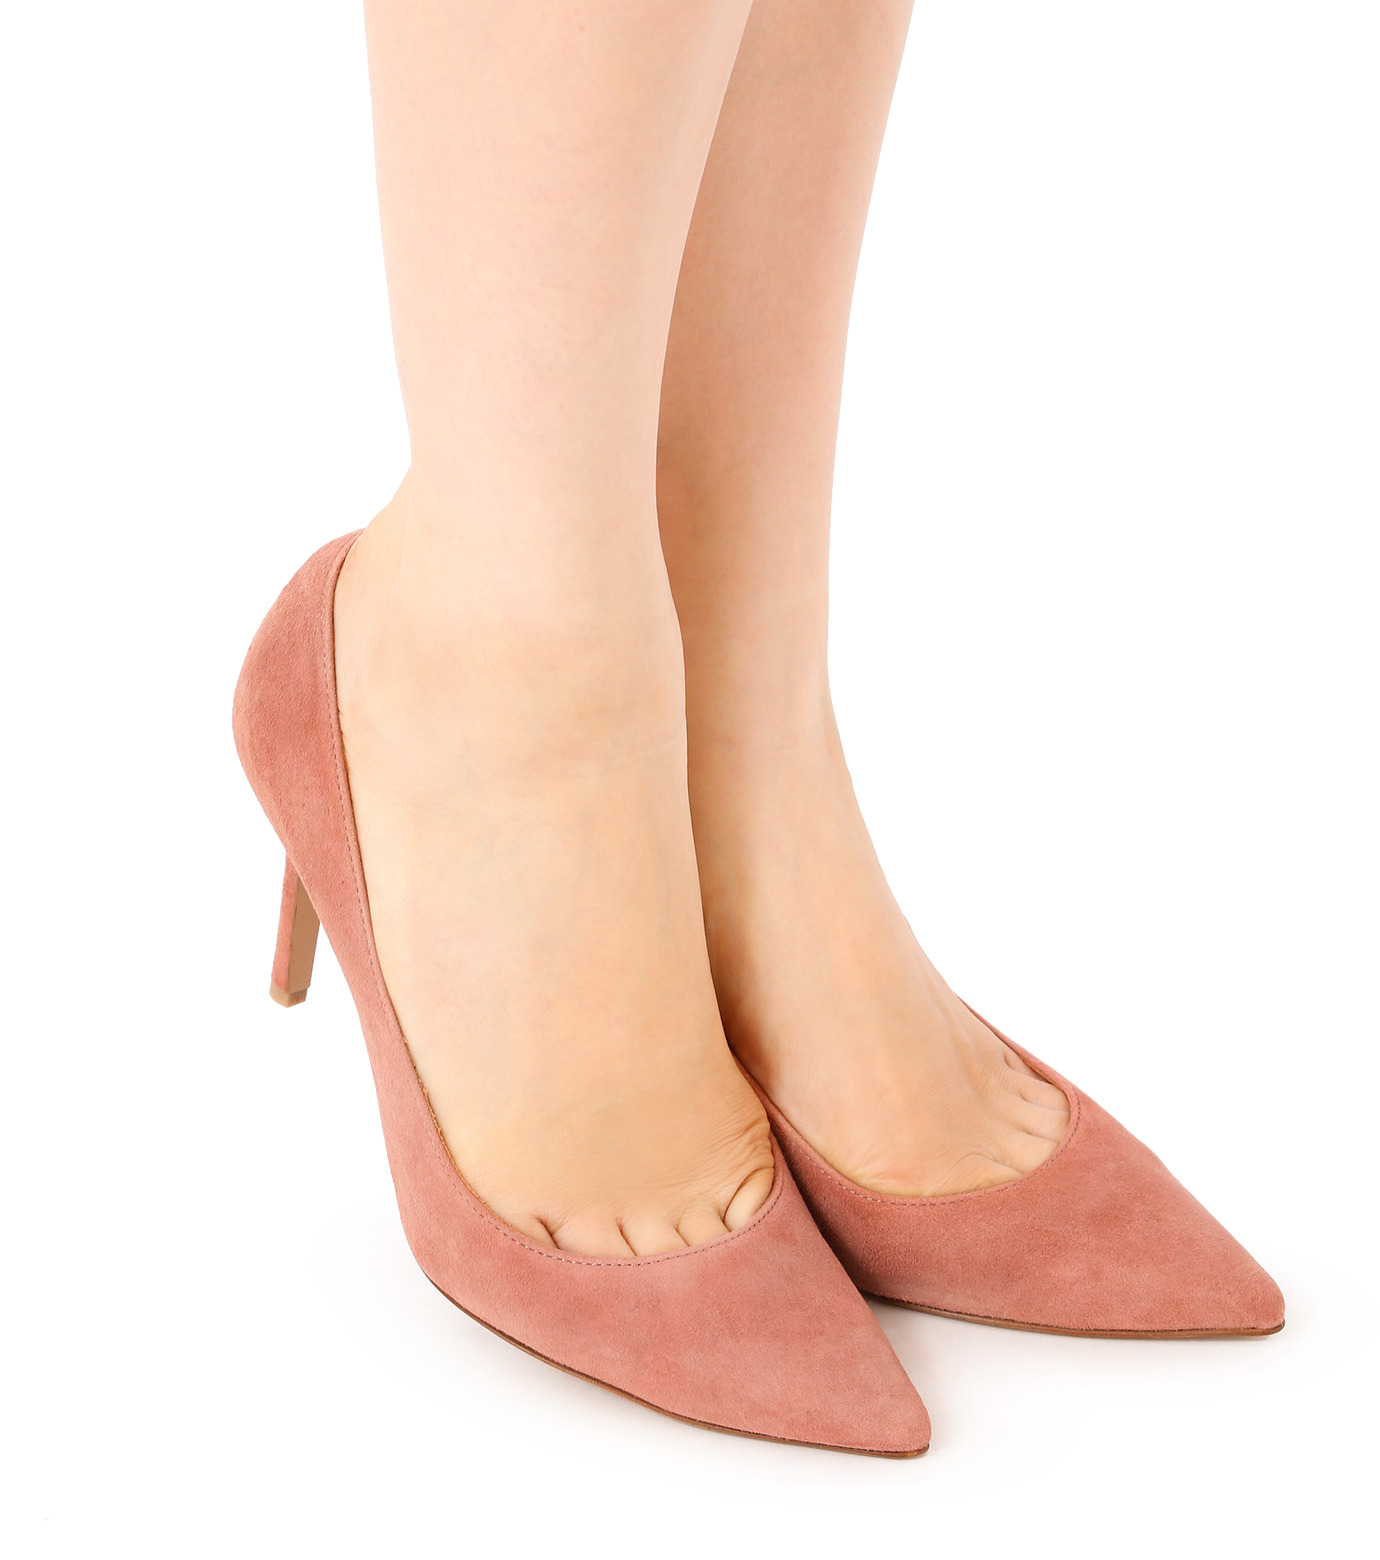 PIPPICHIC(ピッピシック)のPointed Toe 85mm Heel Pumps-LIGHT PINK(パンプス/pumps)-PP16-PPP9-L 拡大詳細画像5